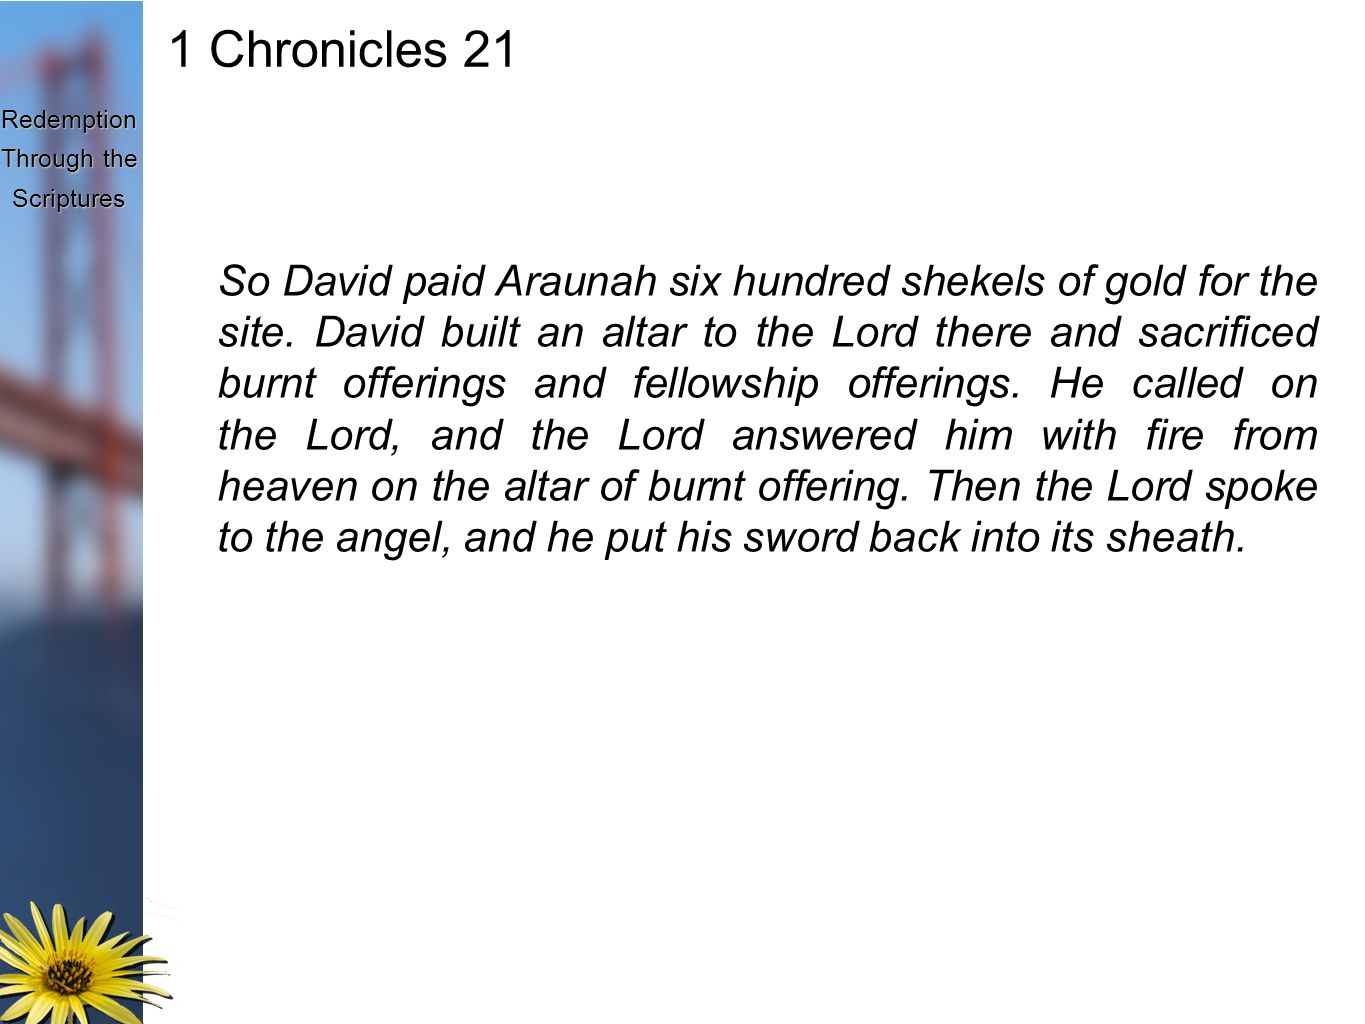 Redemption Through the Scriptures 1 Chronicles 21 So David paid Araunah six hundred shekels of gold for the site.